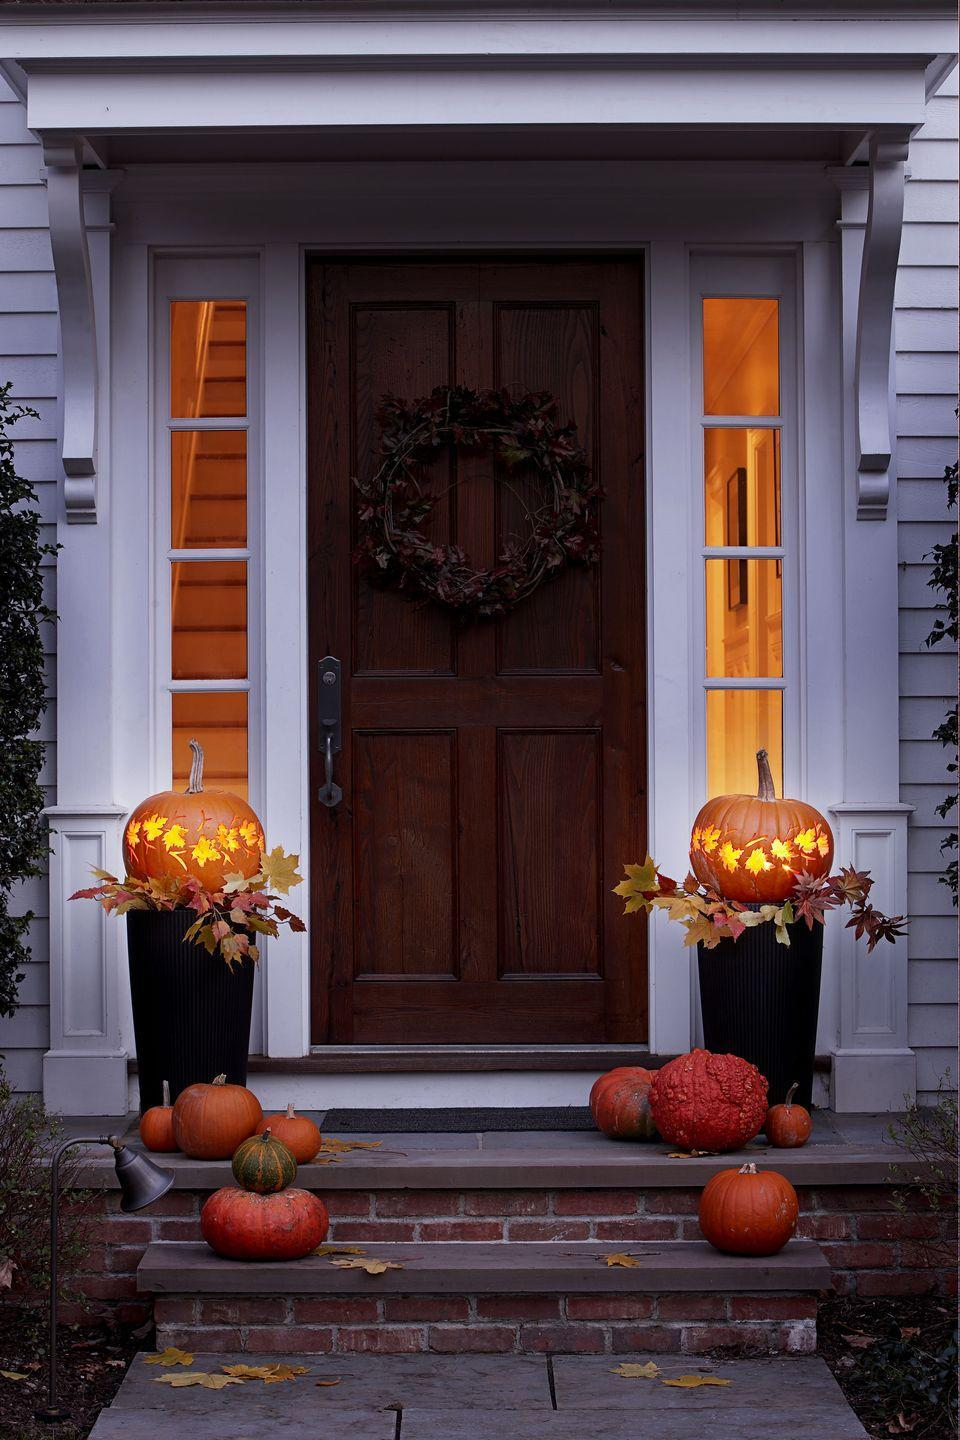 """<p>A textured branch wreath is suitable for the fall season, but it's also brilliant for Halloween when paired with a chic pumpkin collection. <br><br><a class=""""link rapid-noclick-resp"""" href=""""https://go.redirectingat.com?id=74968X1596630&url=https%3A%2F%2Fwww.michaels.com%2F18in-grapevine-wreath-by-ashland%2F10375477.html&sref=https%3A%2F%2Fwww.goodhousekeeping.com%2Fholidays%2Fhalloween-ideas%2Fg32948621%2Fhalloween-door-decorations%2F"""" rel=""""nofollow noopener"""" target=""""_blank"""" data-ylk=""""slk:SHOP GRAPEVINE WREATH"""">SHOP GRAPEVINE WREATH</a></p>"""